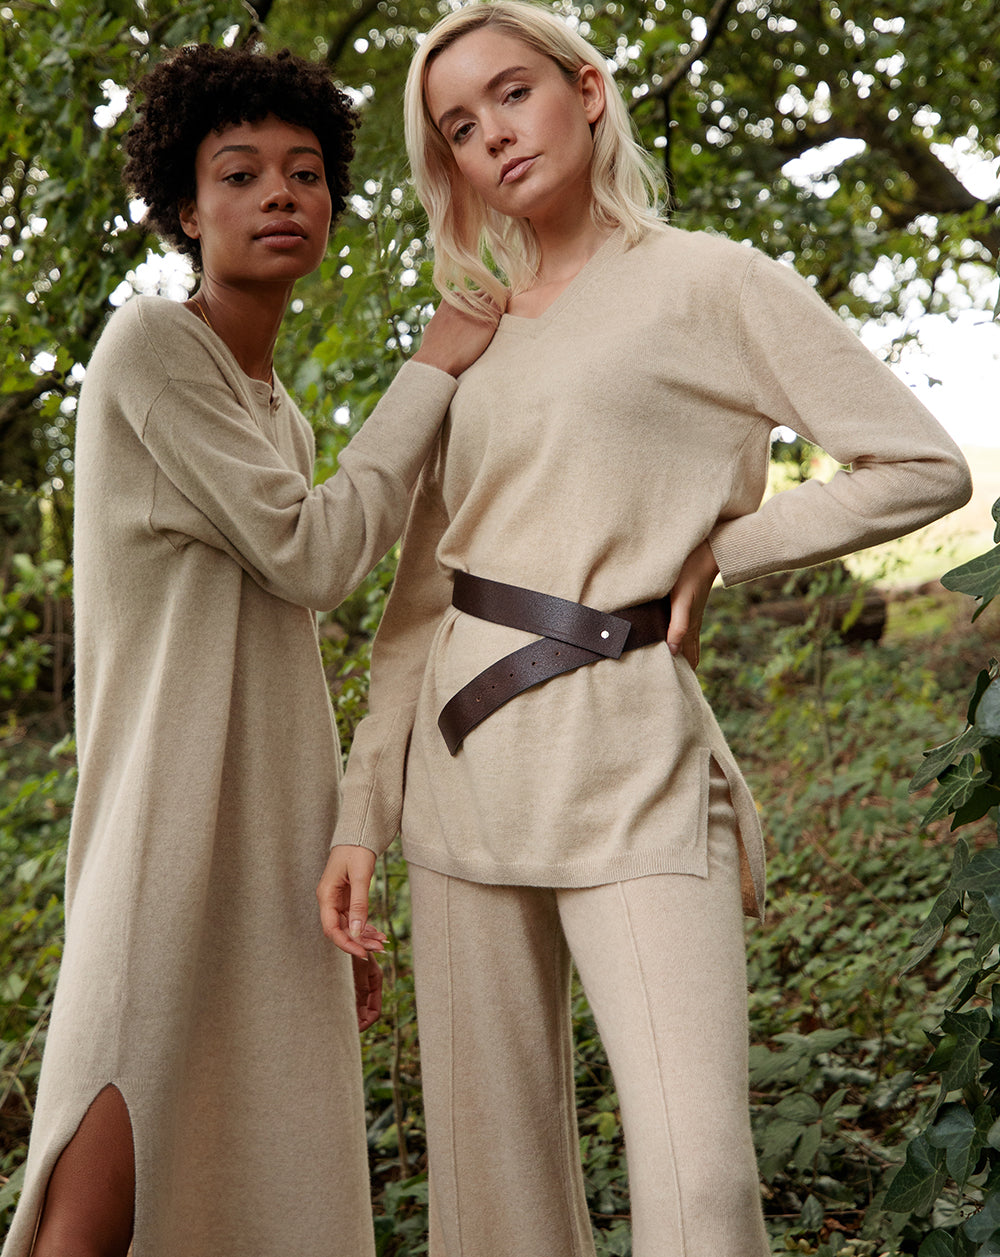 Black model wearing Les Cent Ciels tunic cashmere dress alongside blonde model wearing cashmere tunic top and trousers, both in undyed beige cashmere